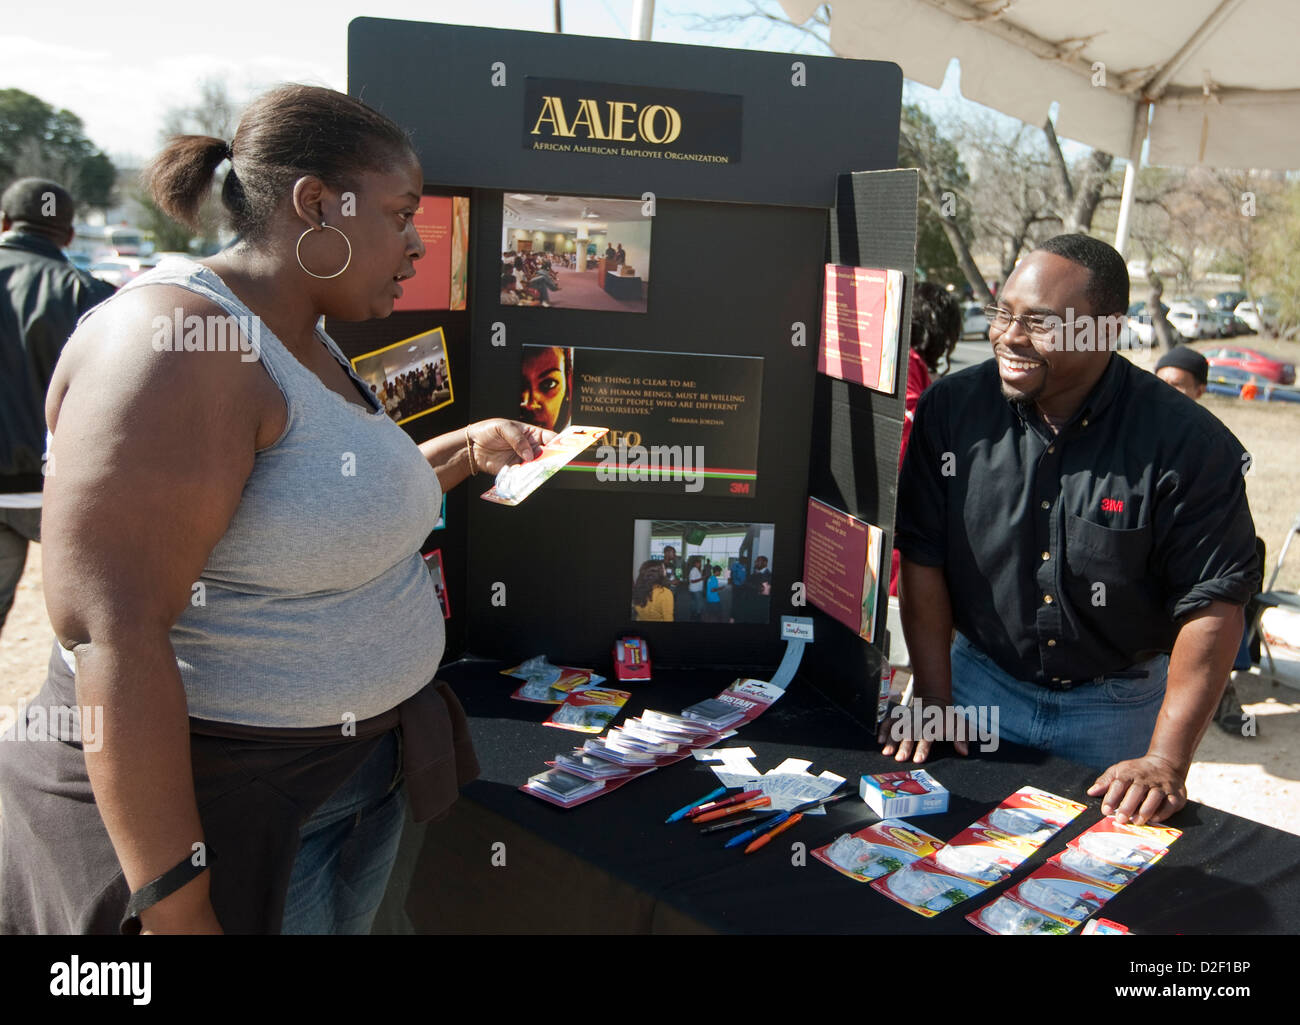 Male representative of the African-American employee organization, speaks to interested female festival attendee Stock Photo